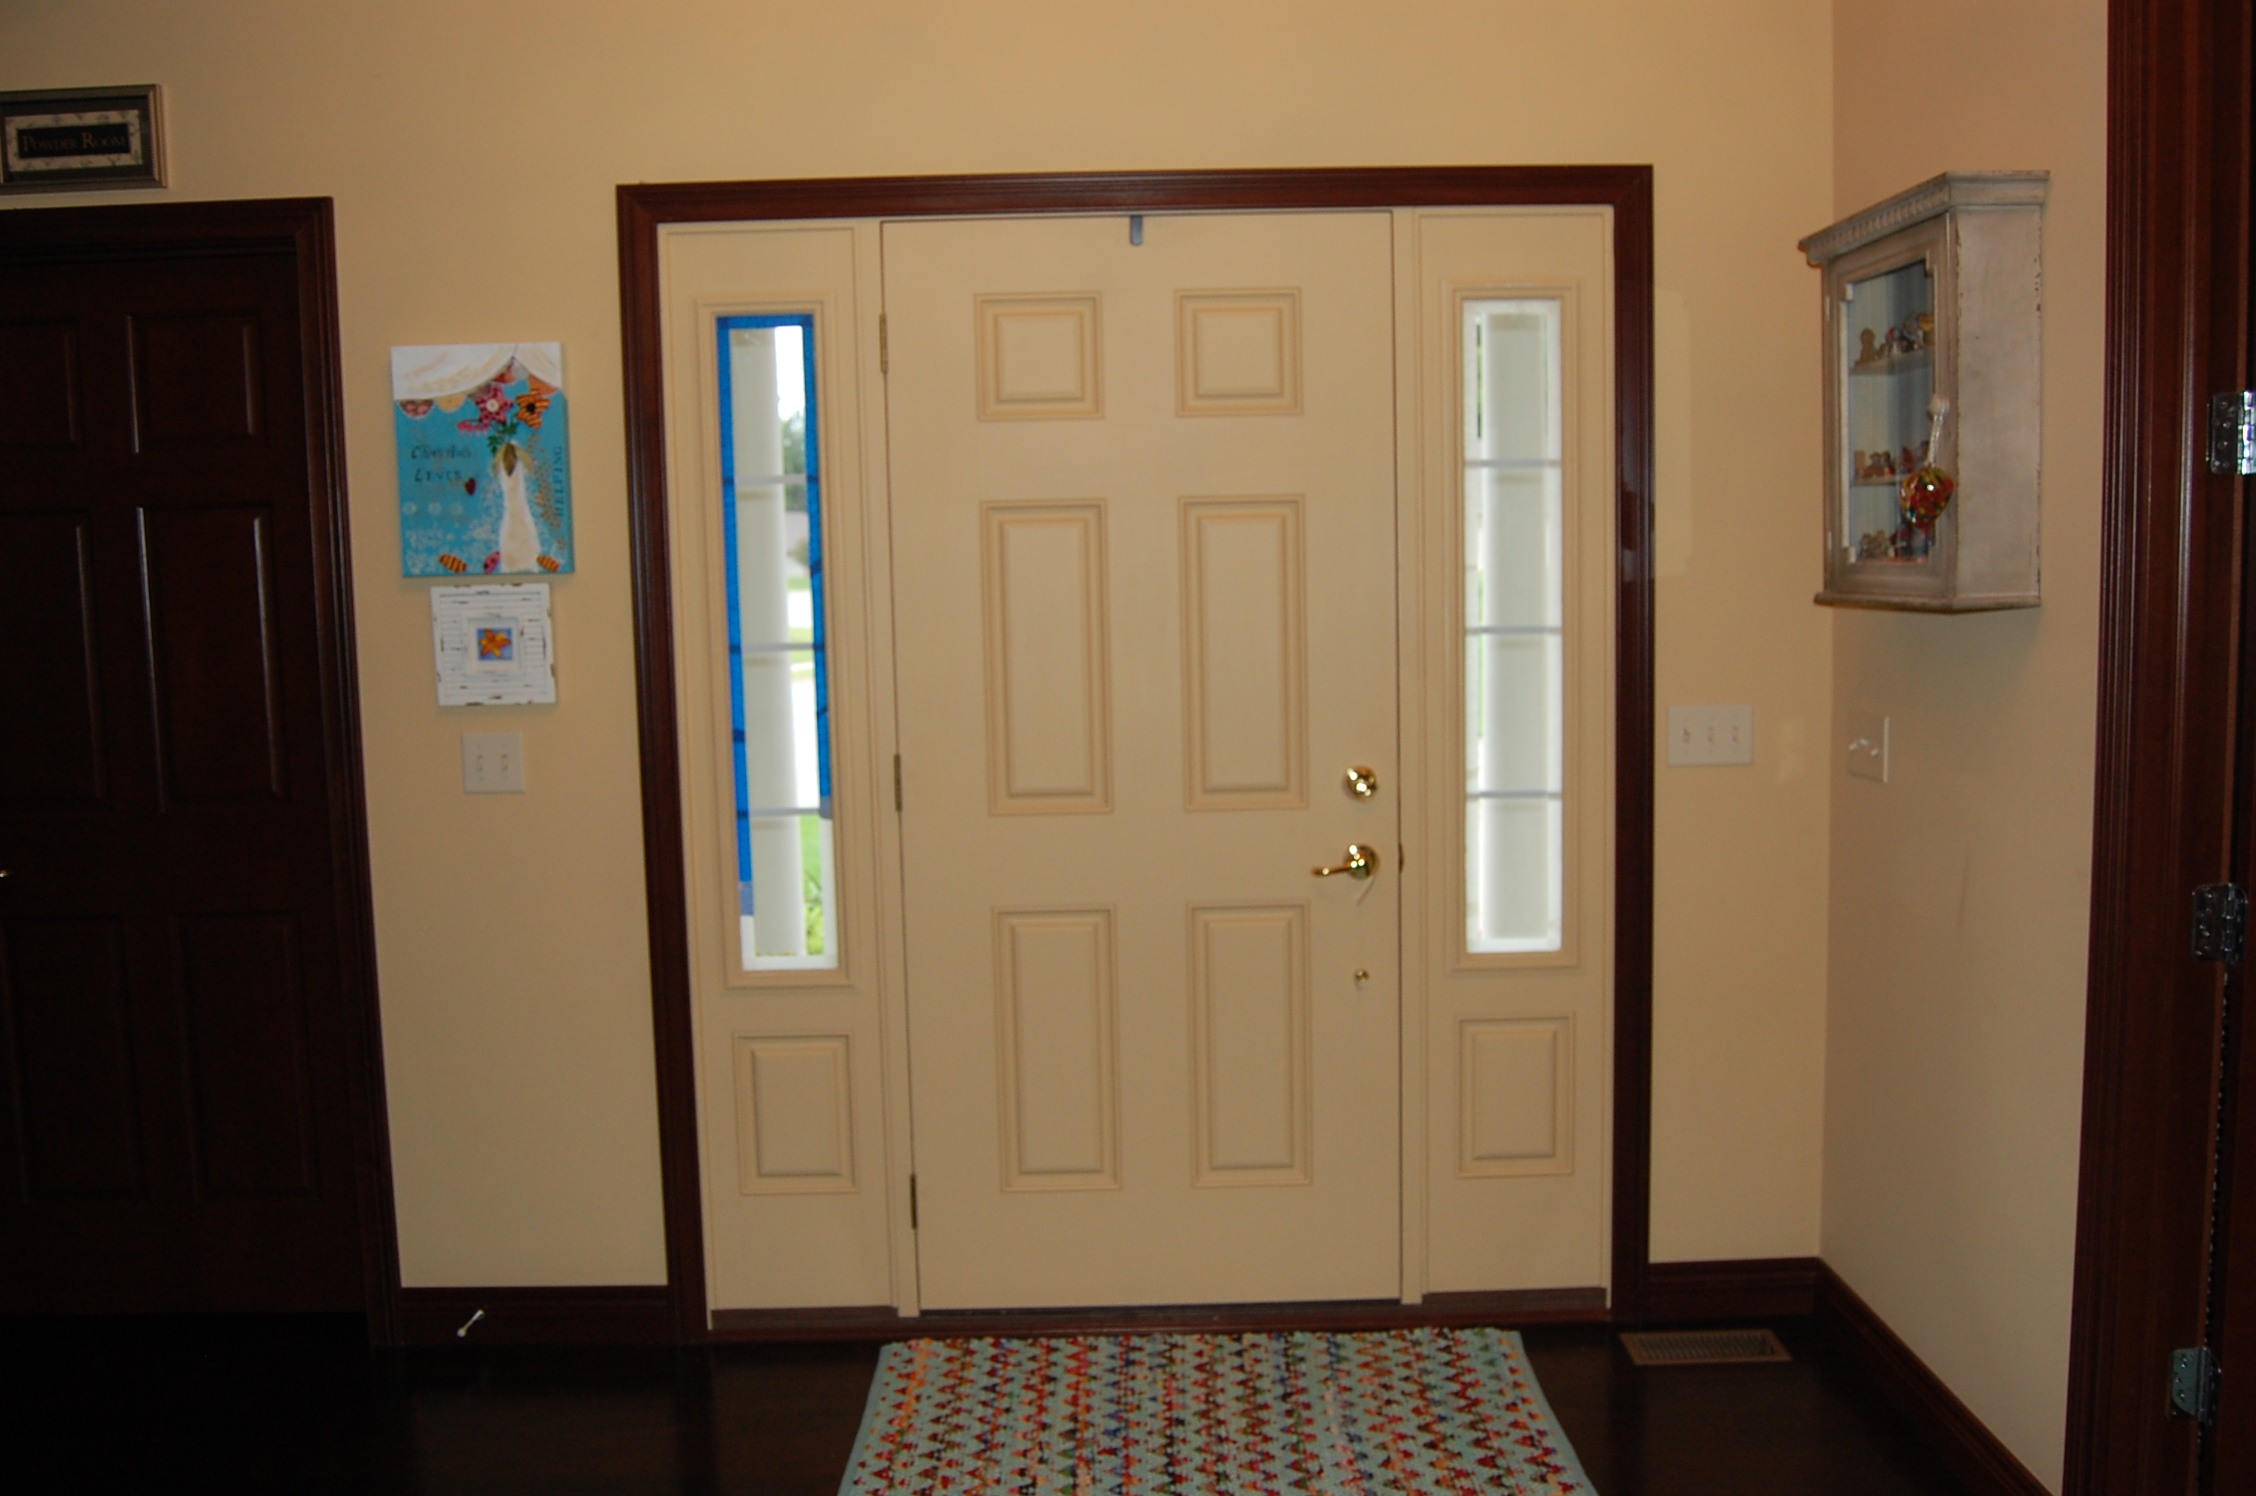 When we built our house five years ago I chose a Tuscan Tan I believe (it\u0027s a golden color) but tastes change and I am not ready to paint everything yet so ... & Front Door Color Change \u2013 here\u0027s my hart studio